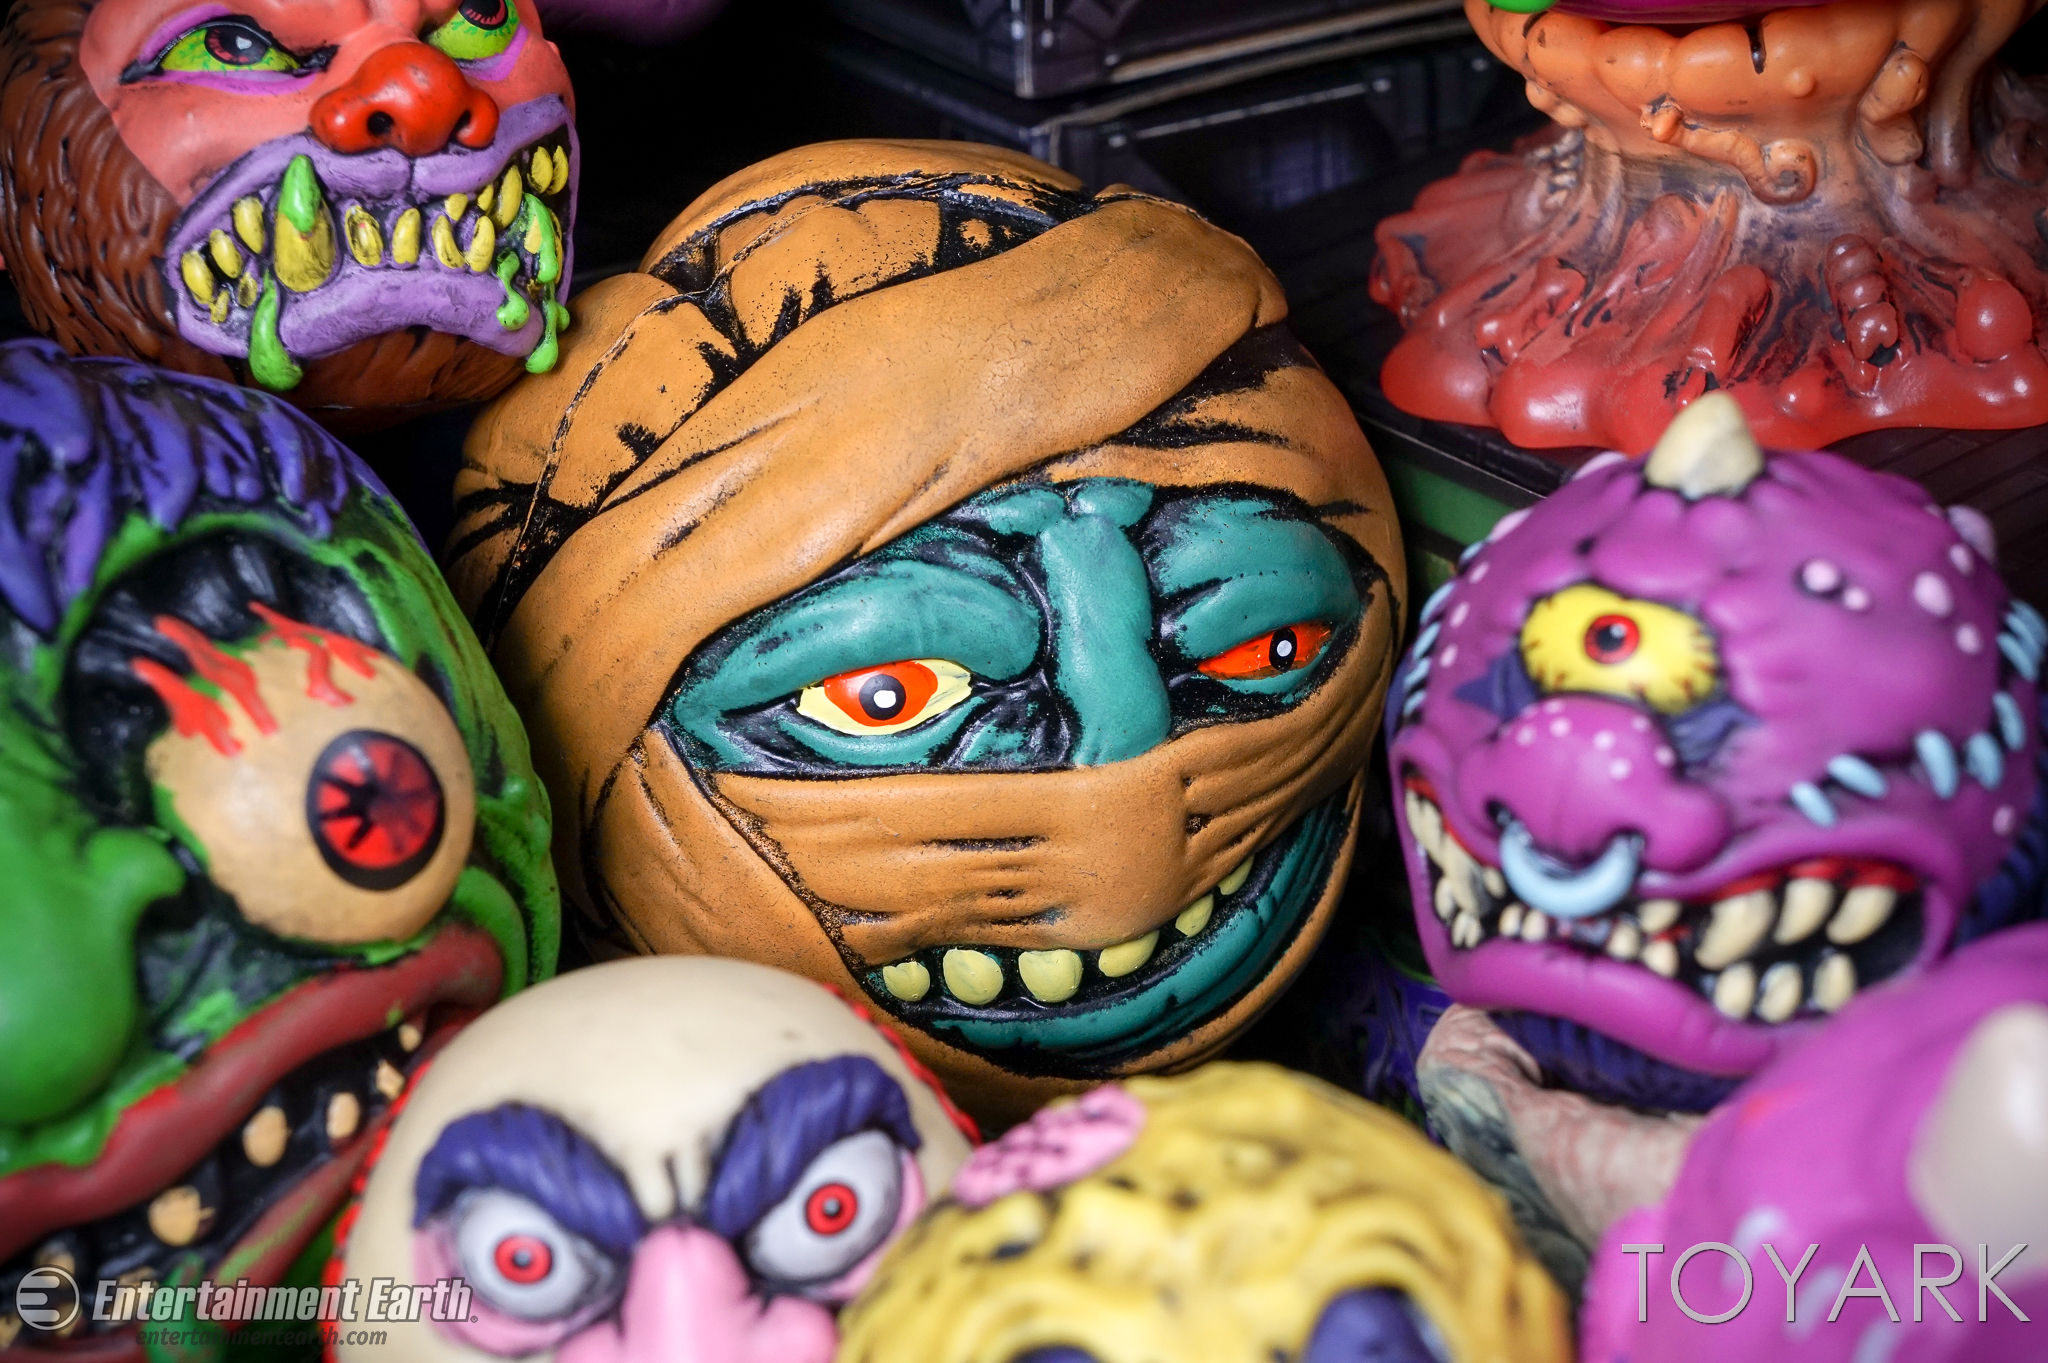 http://news.toyark.com/wp-content/uploads/sites/4/2017/03/Kidrobot-Foam-Madballs-036.jpg